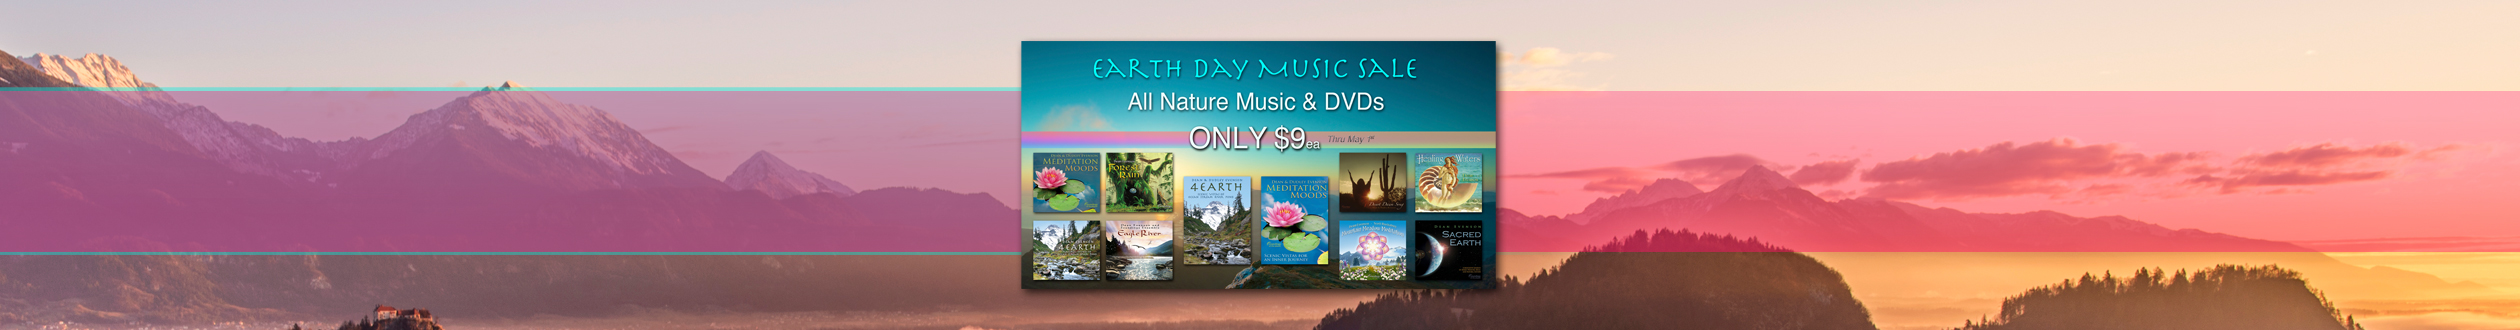 Earth-Day-Nature-Albums-Special-Slide_edited-21